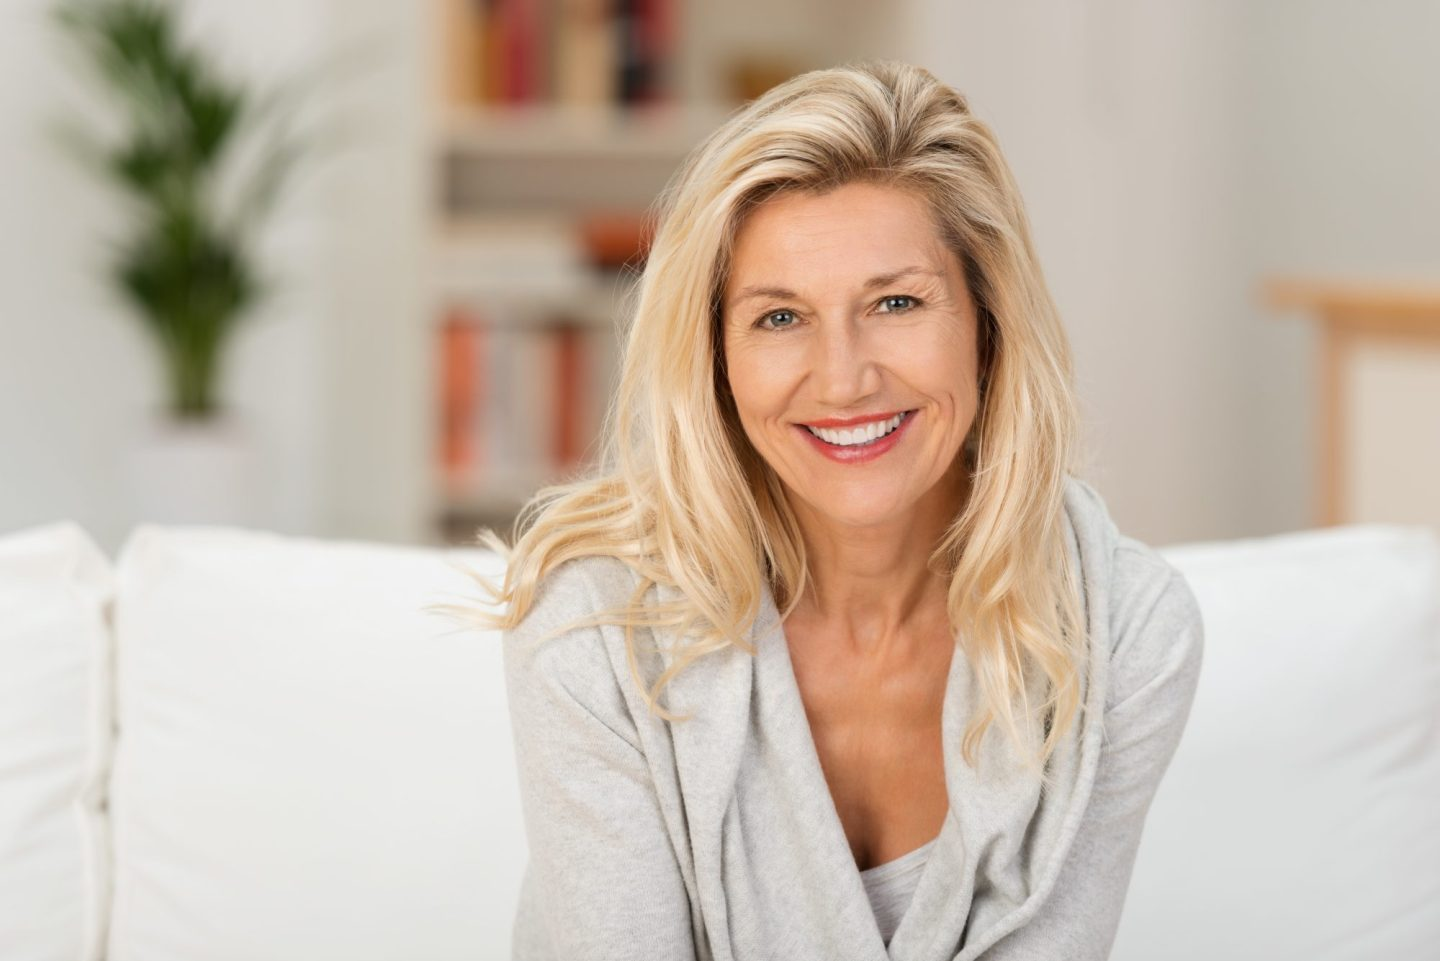 5 reasons women over 40 look amazing